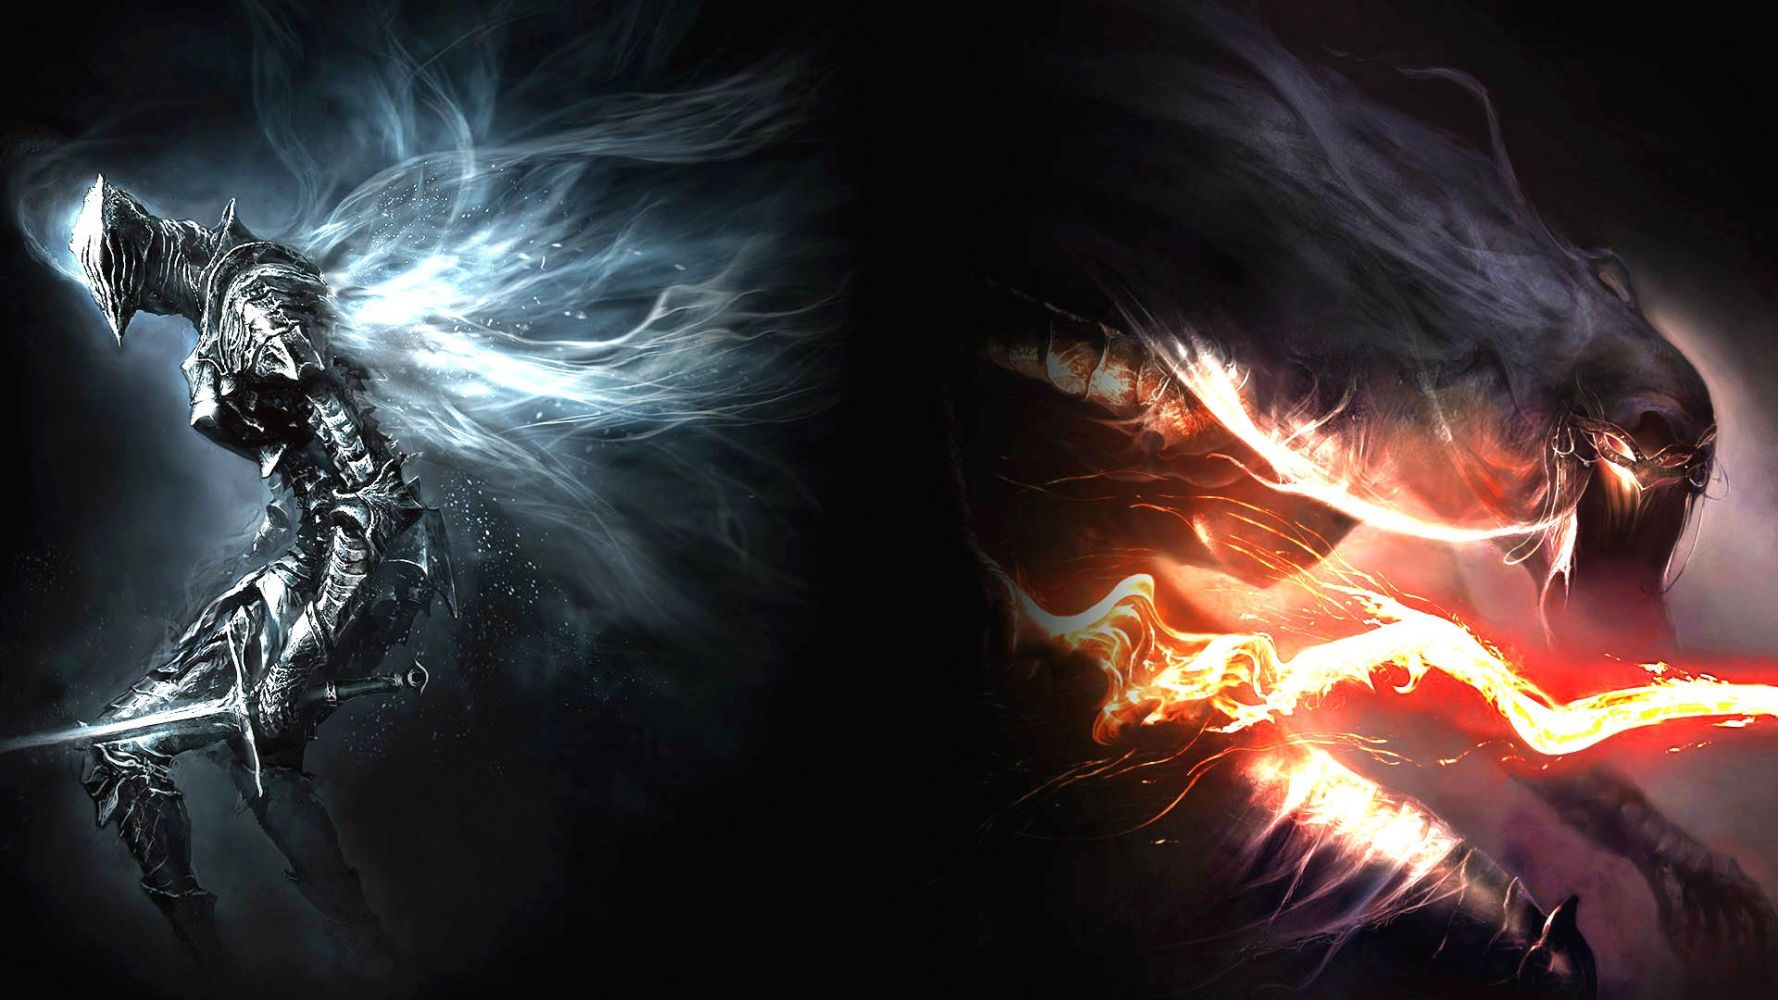 ghost and demon wallpapers free download hd latest new - HD1778×1000